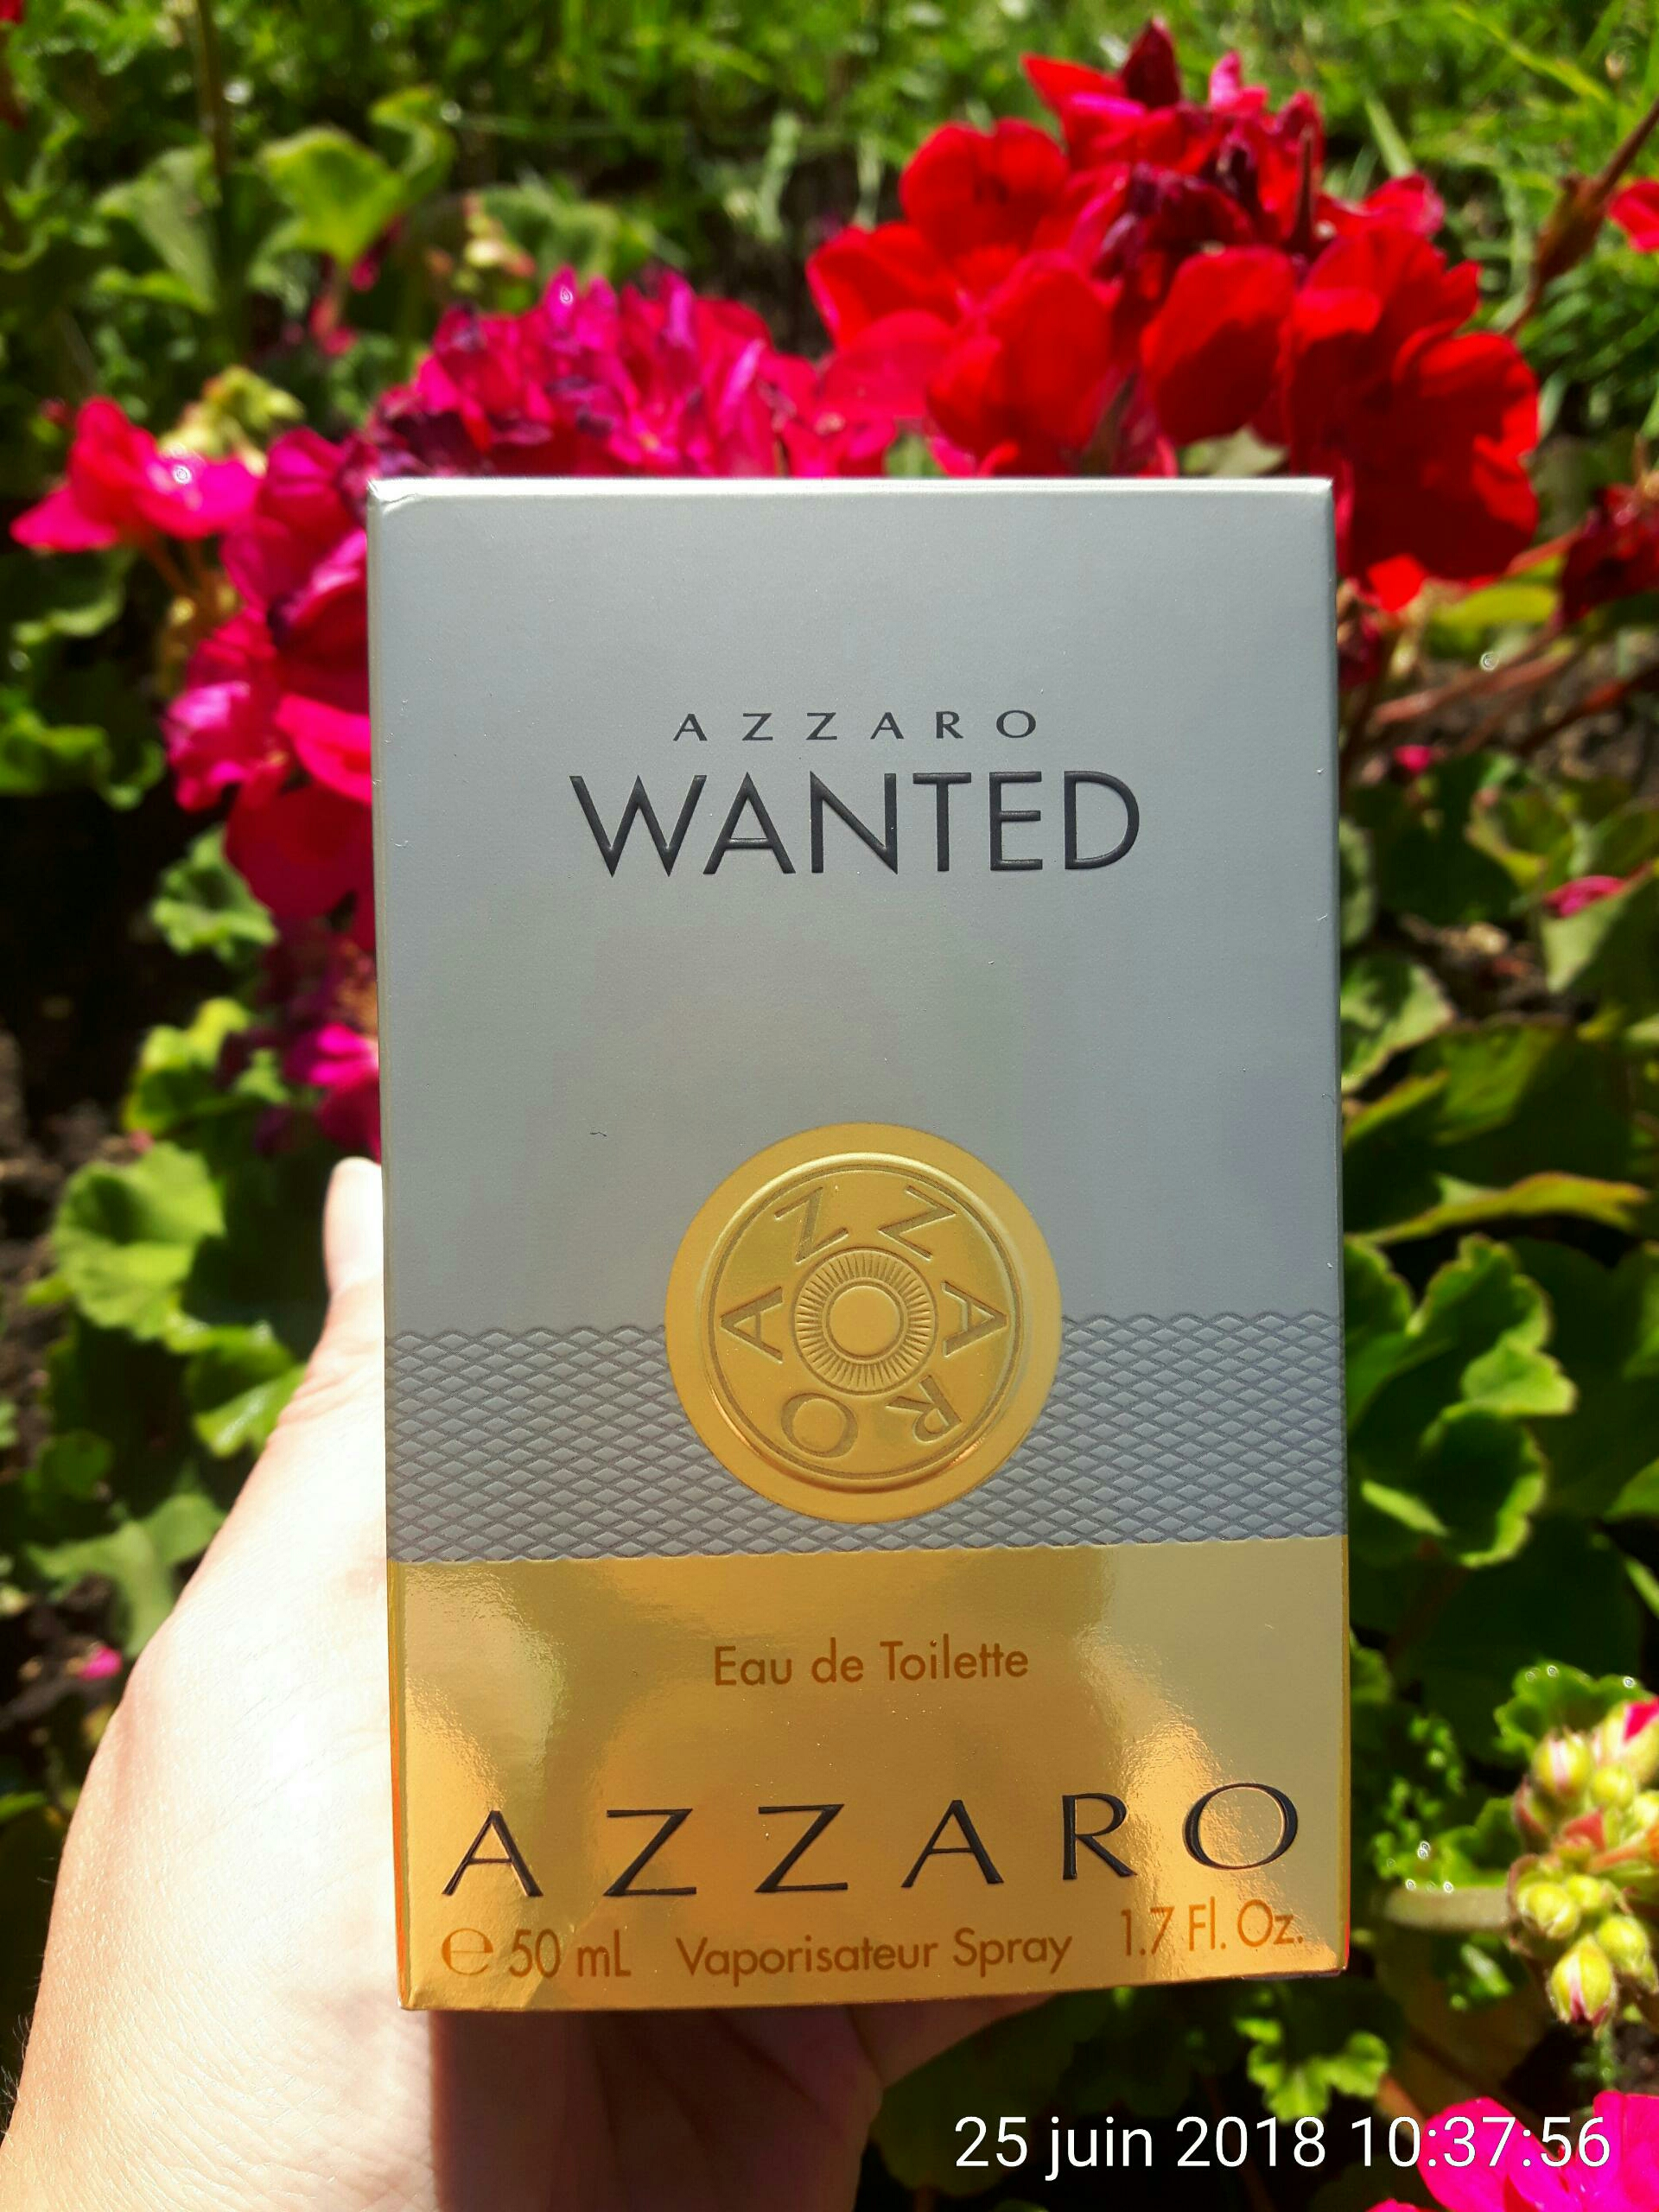 Azzaro wanted!!!